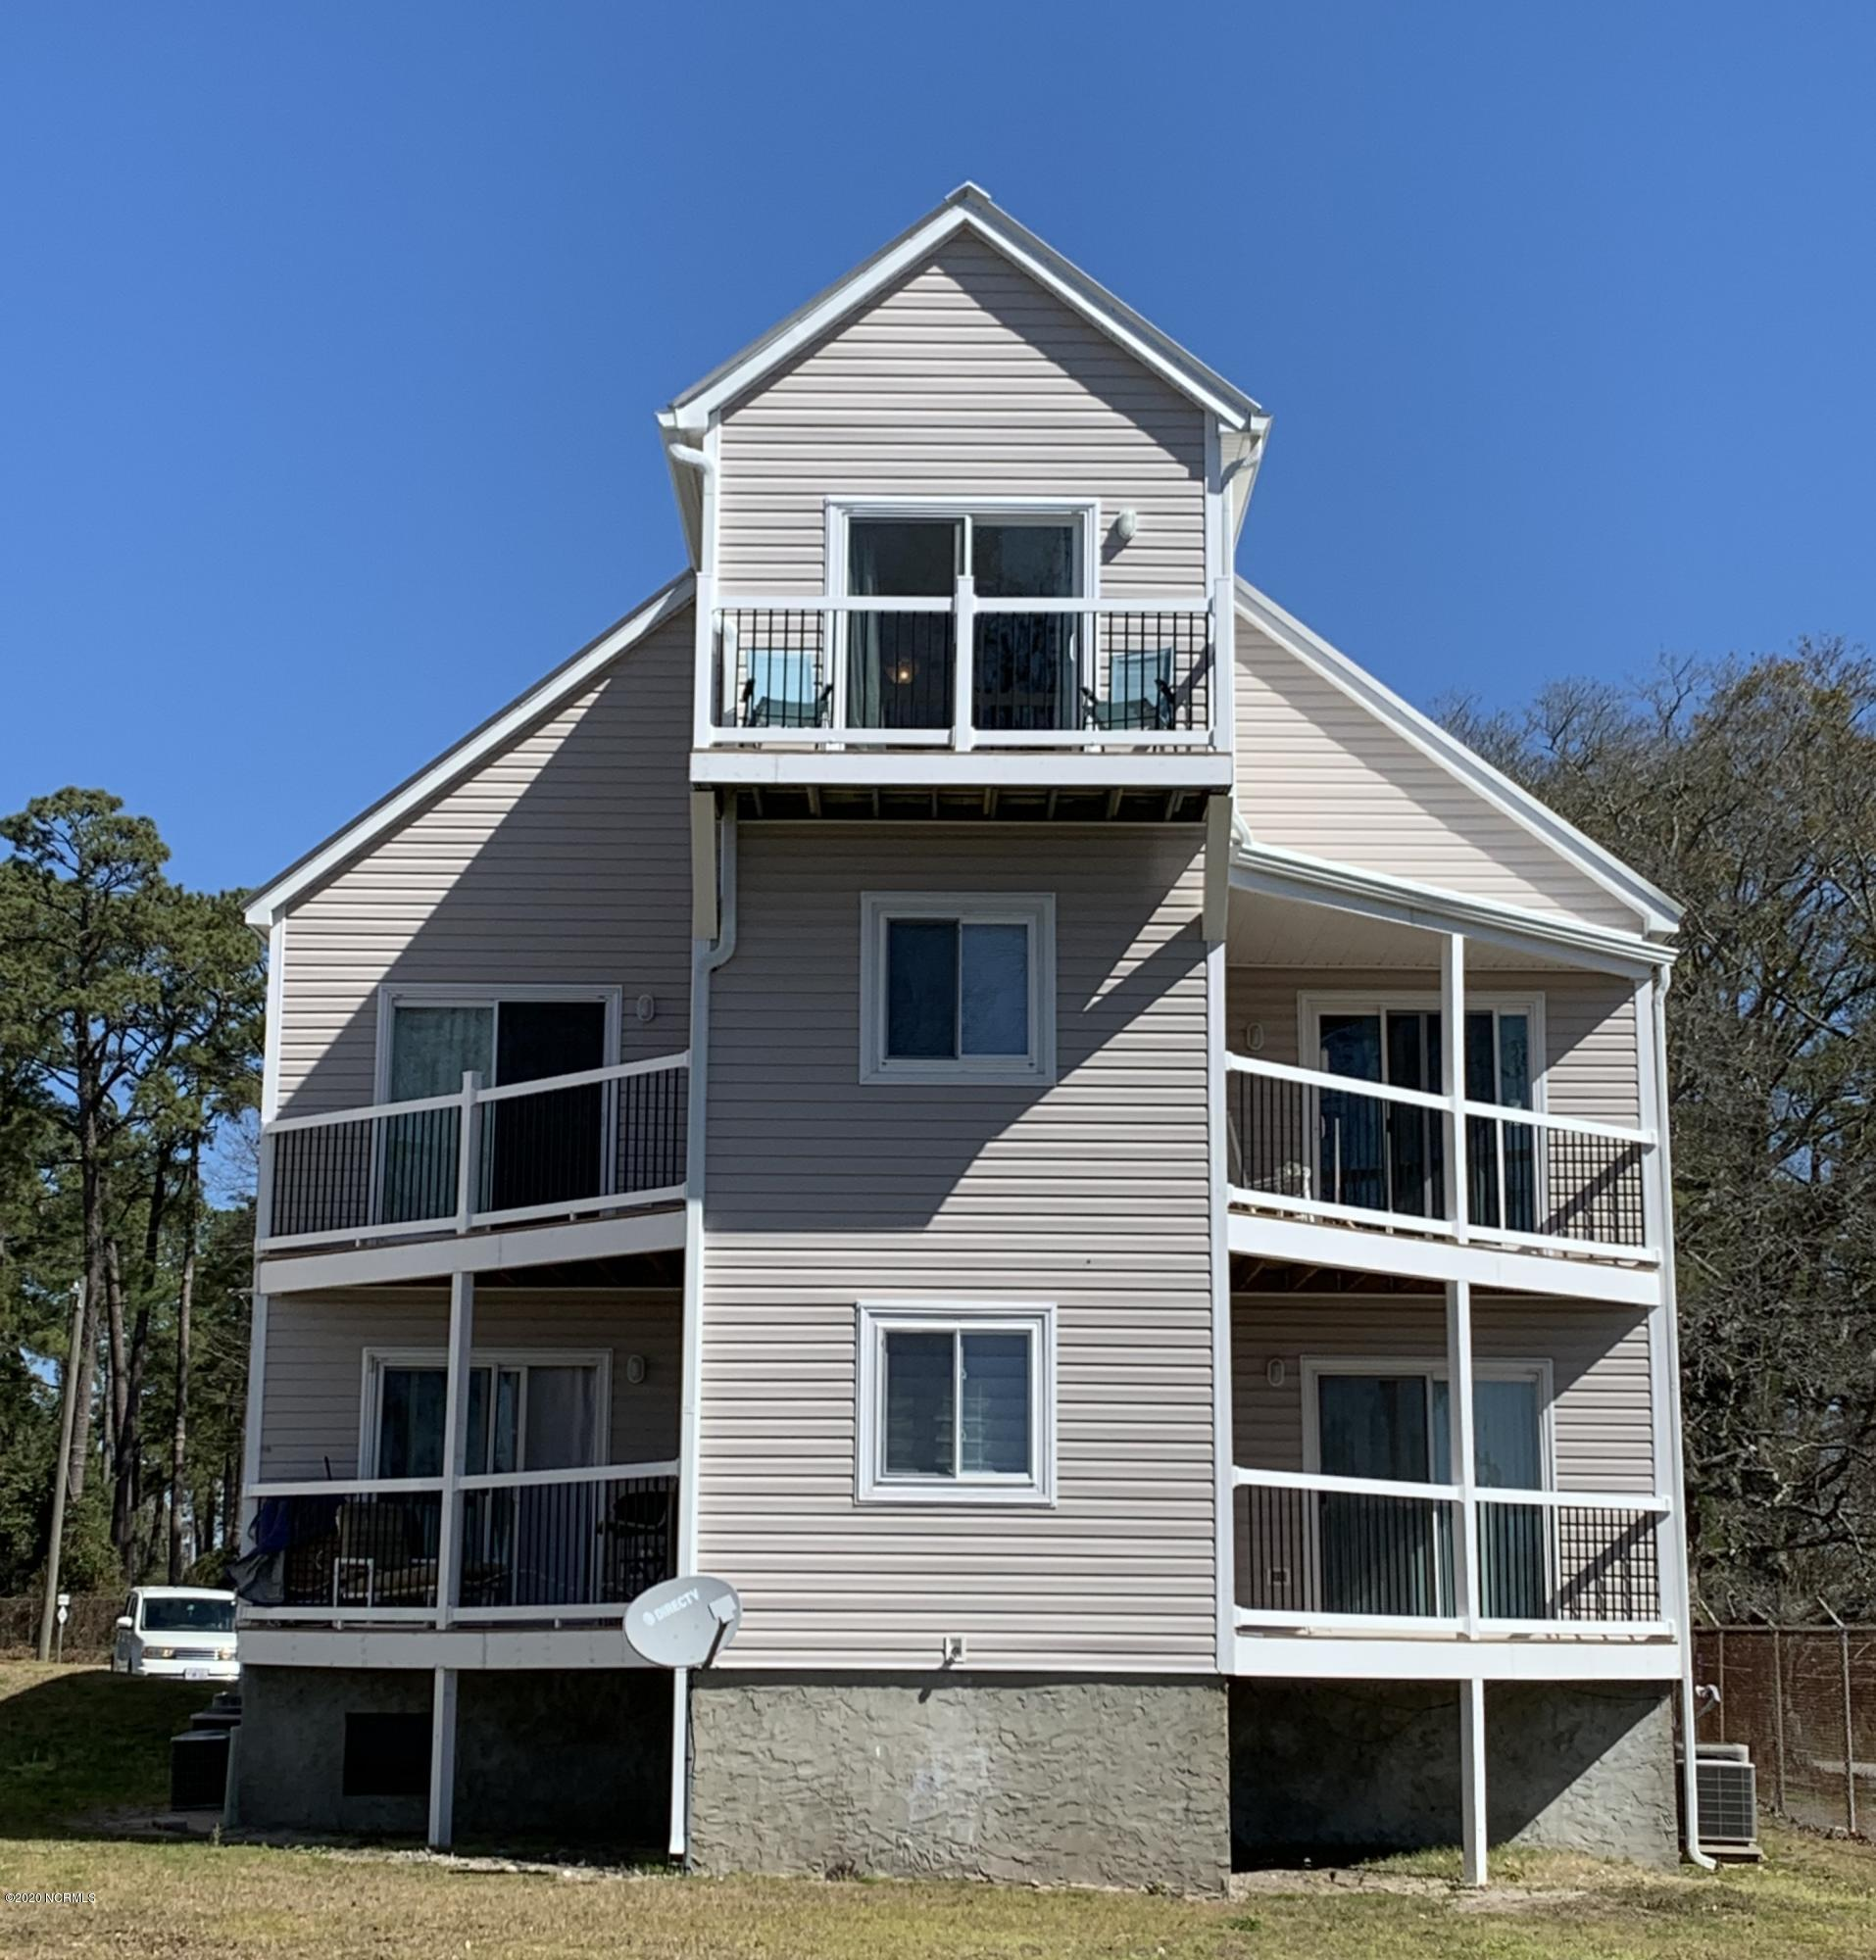 Property for sale at 89 Country Club Drive Unit: A-5, Minnesott Beach,  North Carolina 28510